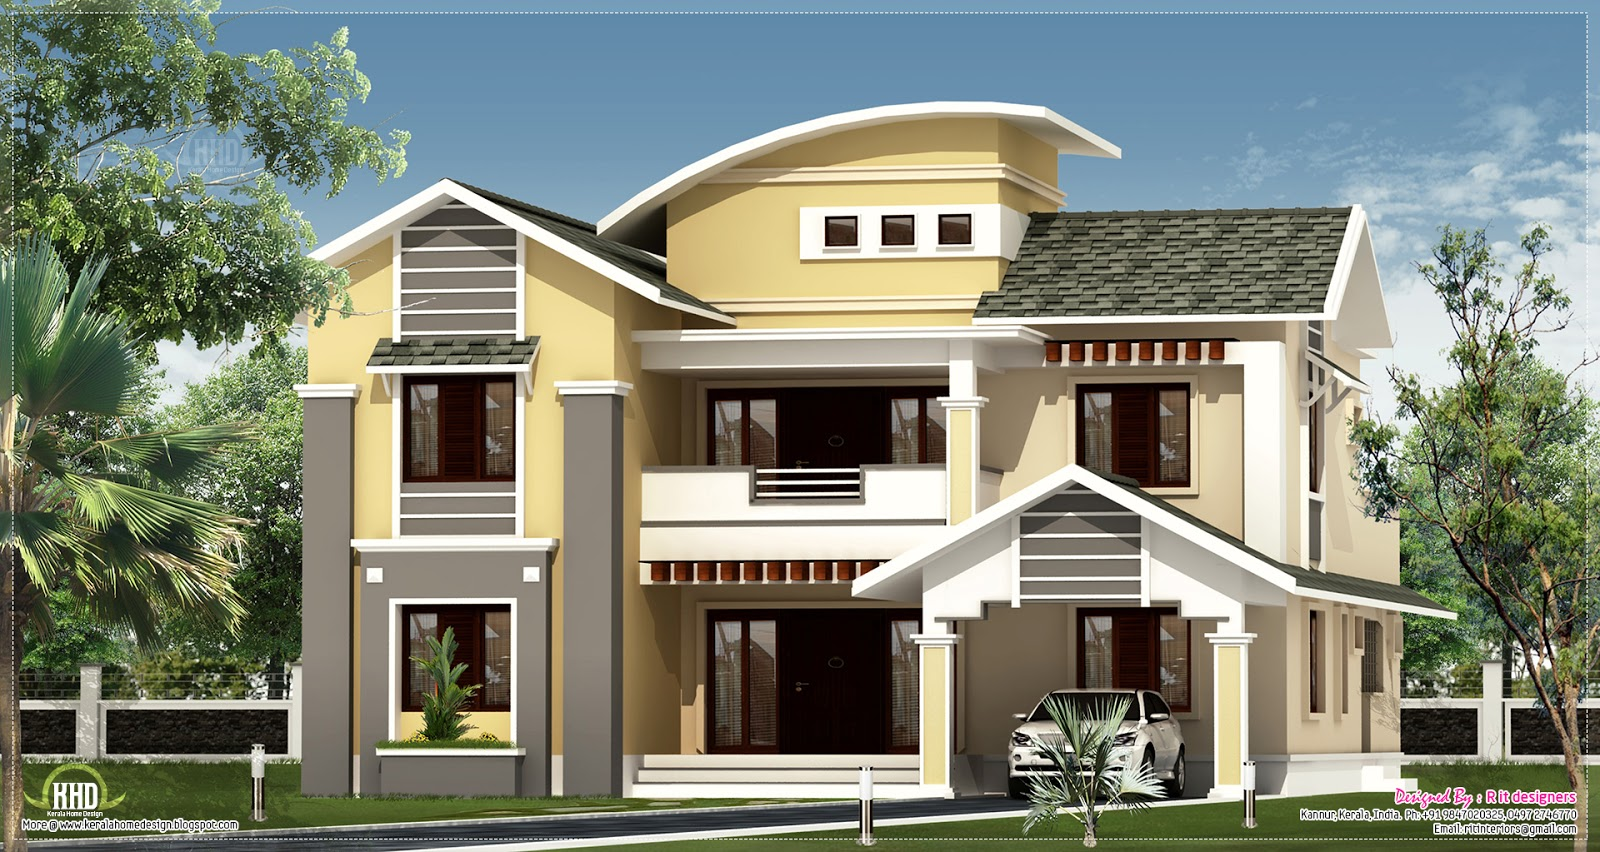 Eco friendly houses 3000 home design from kannur for Villa plans in kerala